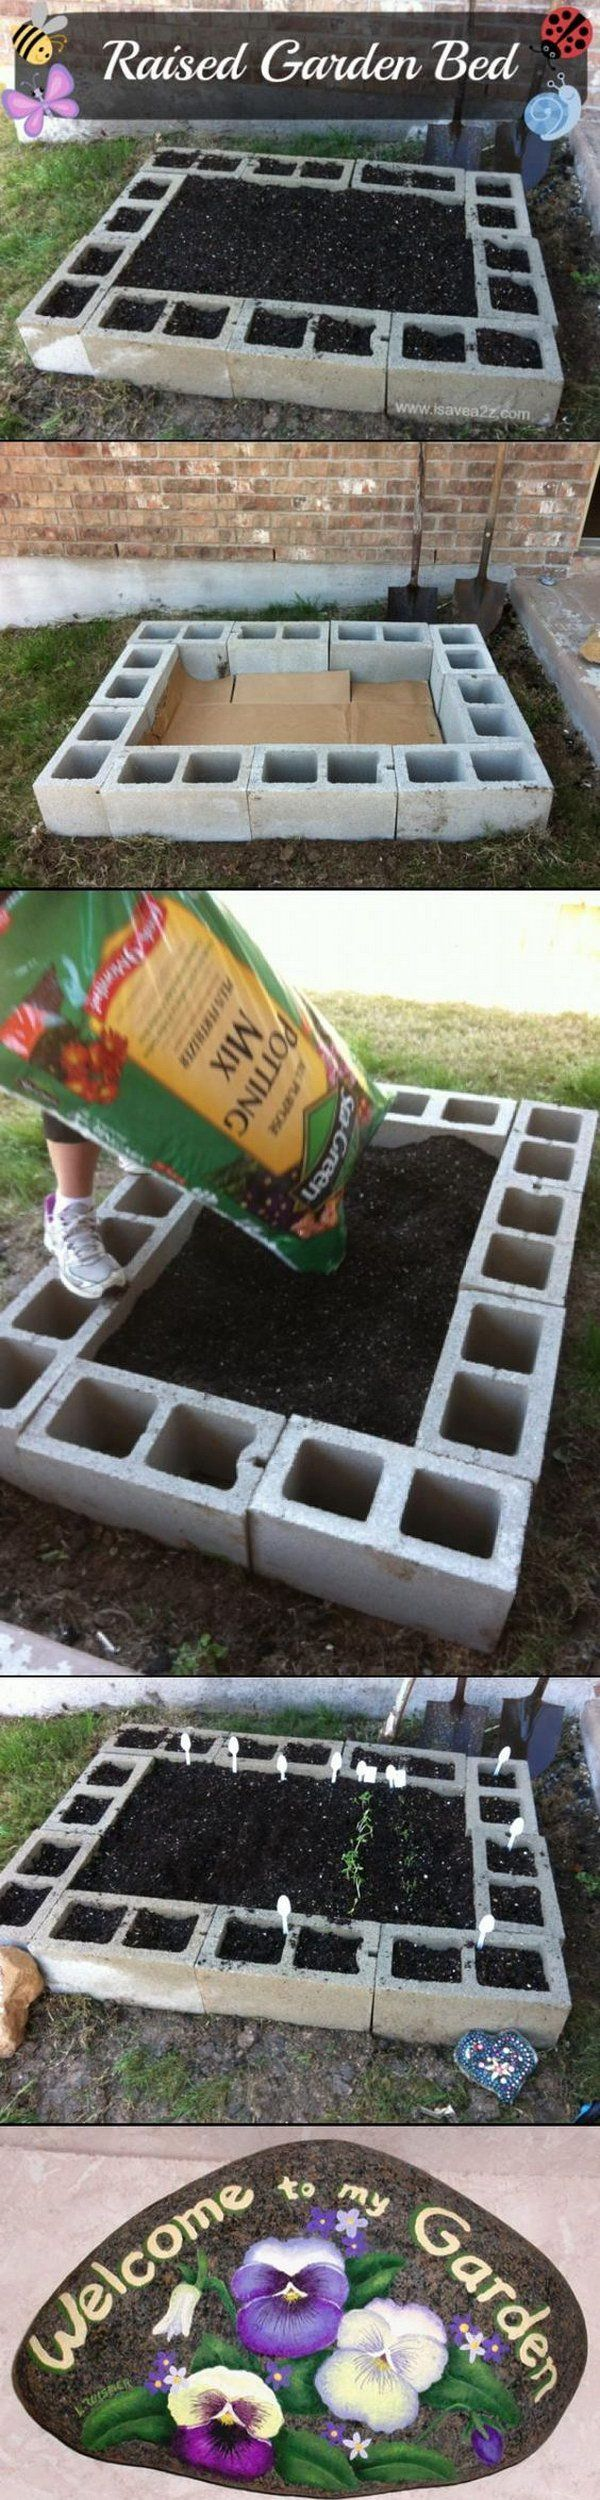 Best 20+ Cinder block garden ideas on Pinterest | Cinder blocks ...